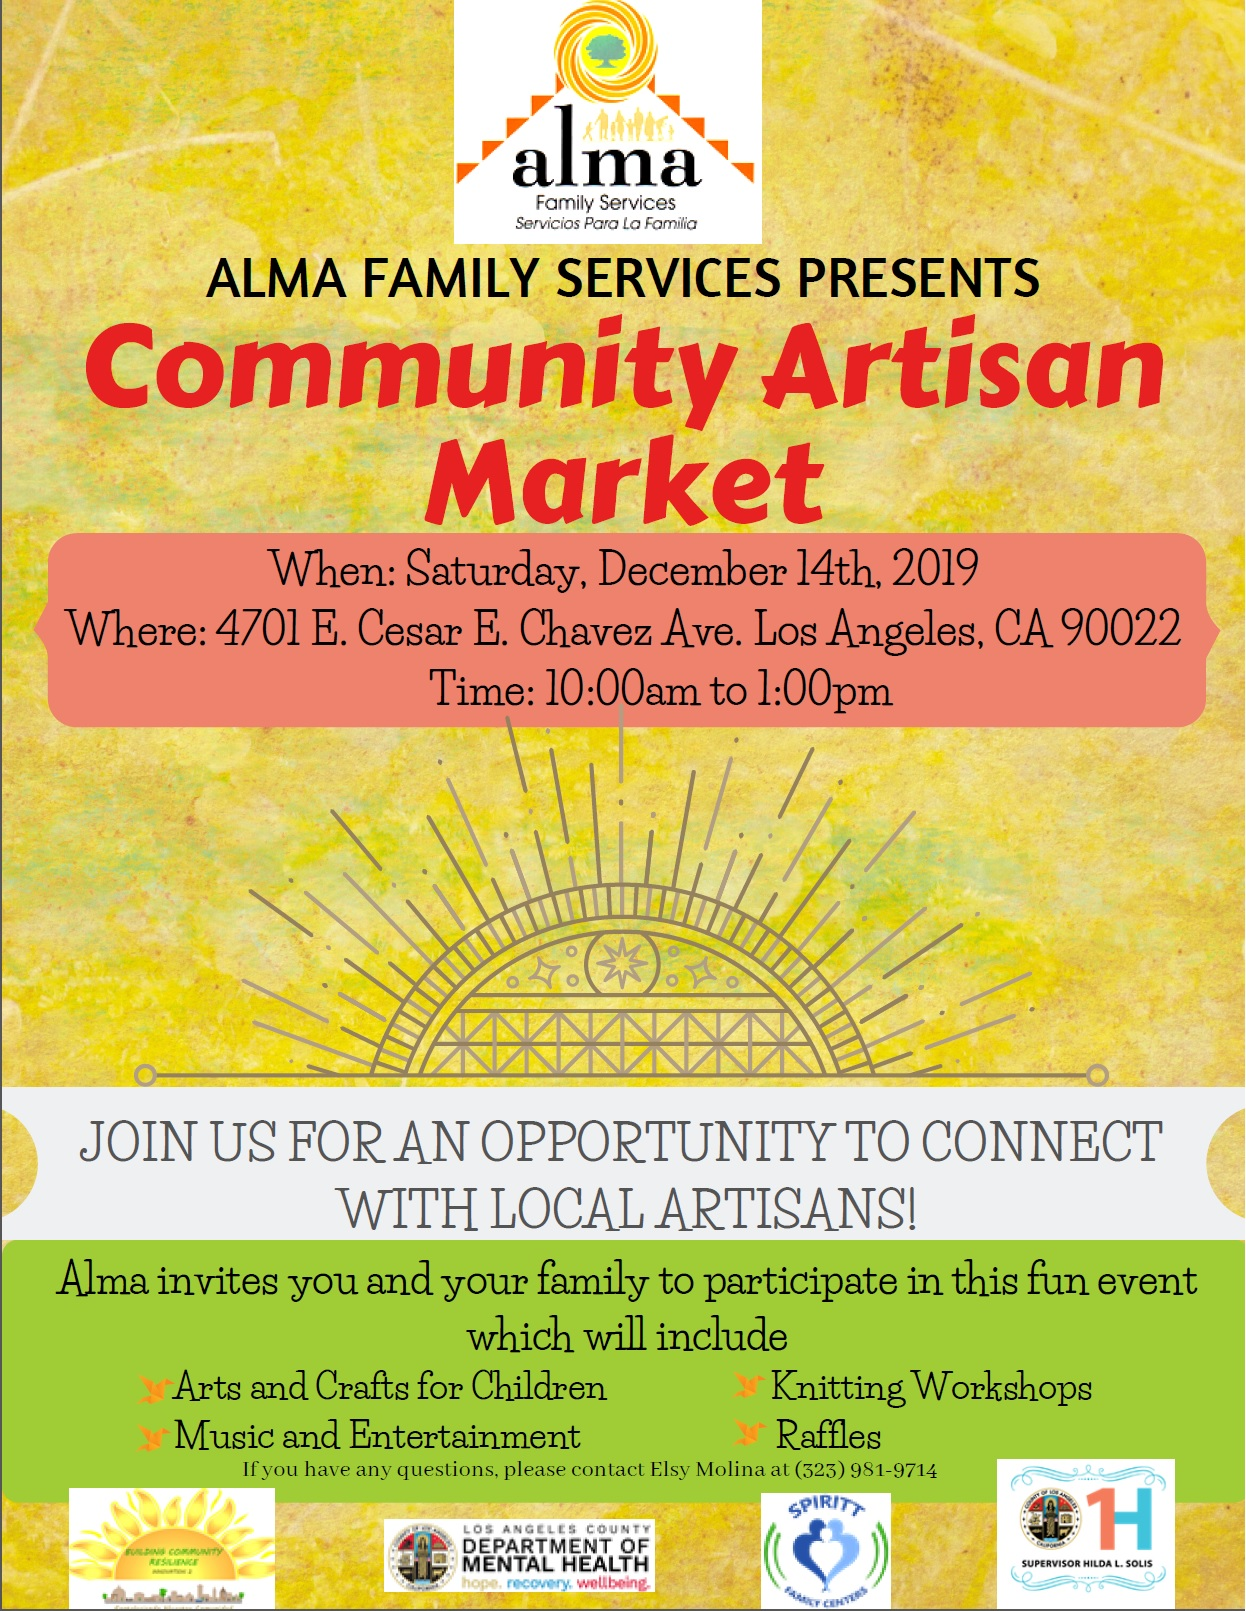 Community Artisan Market English Flyer